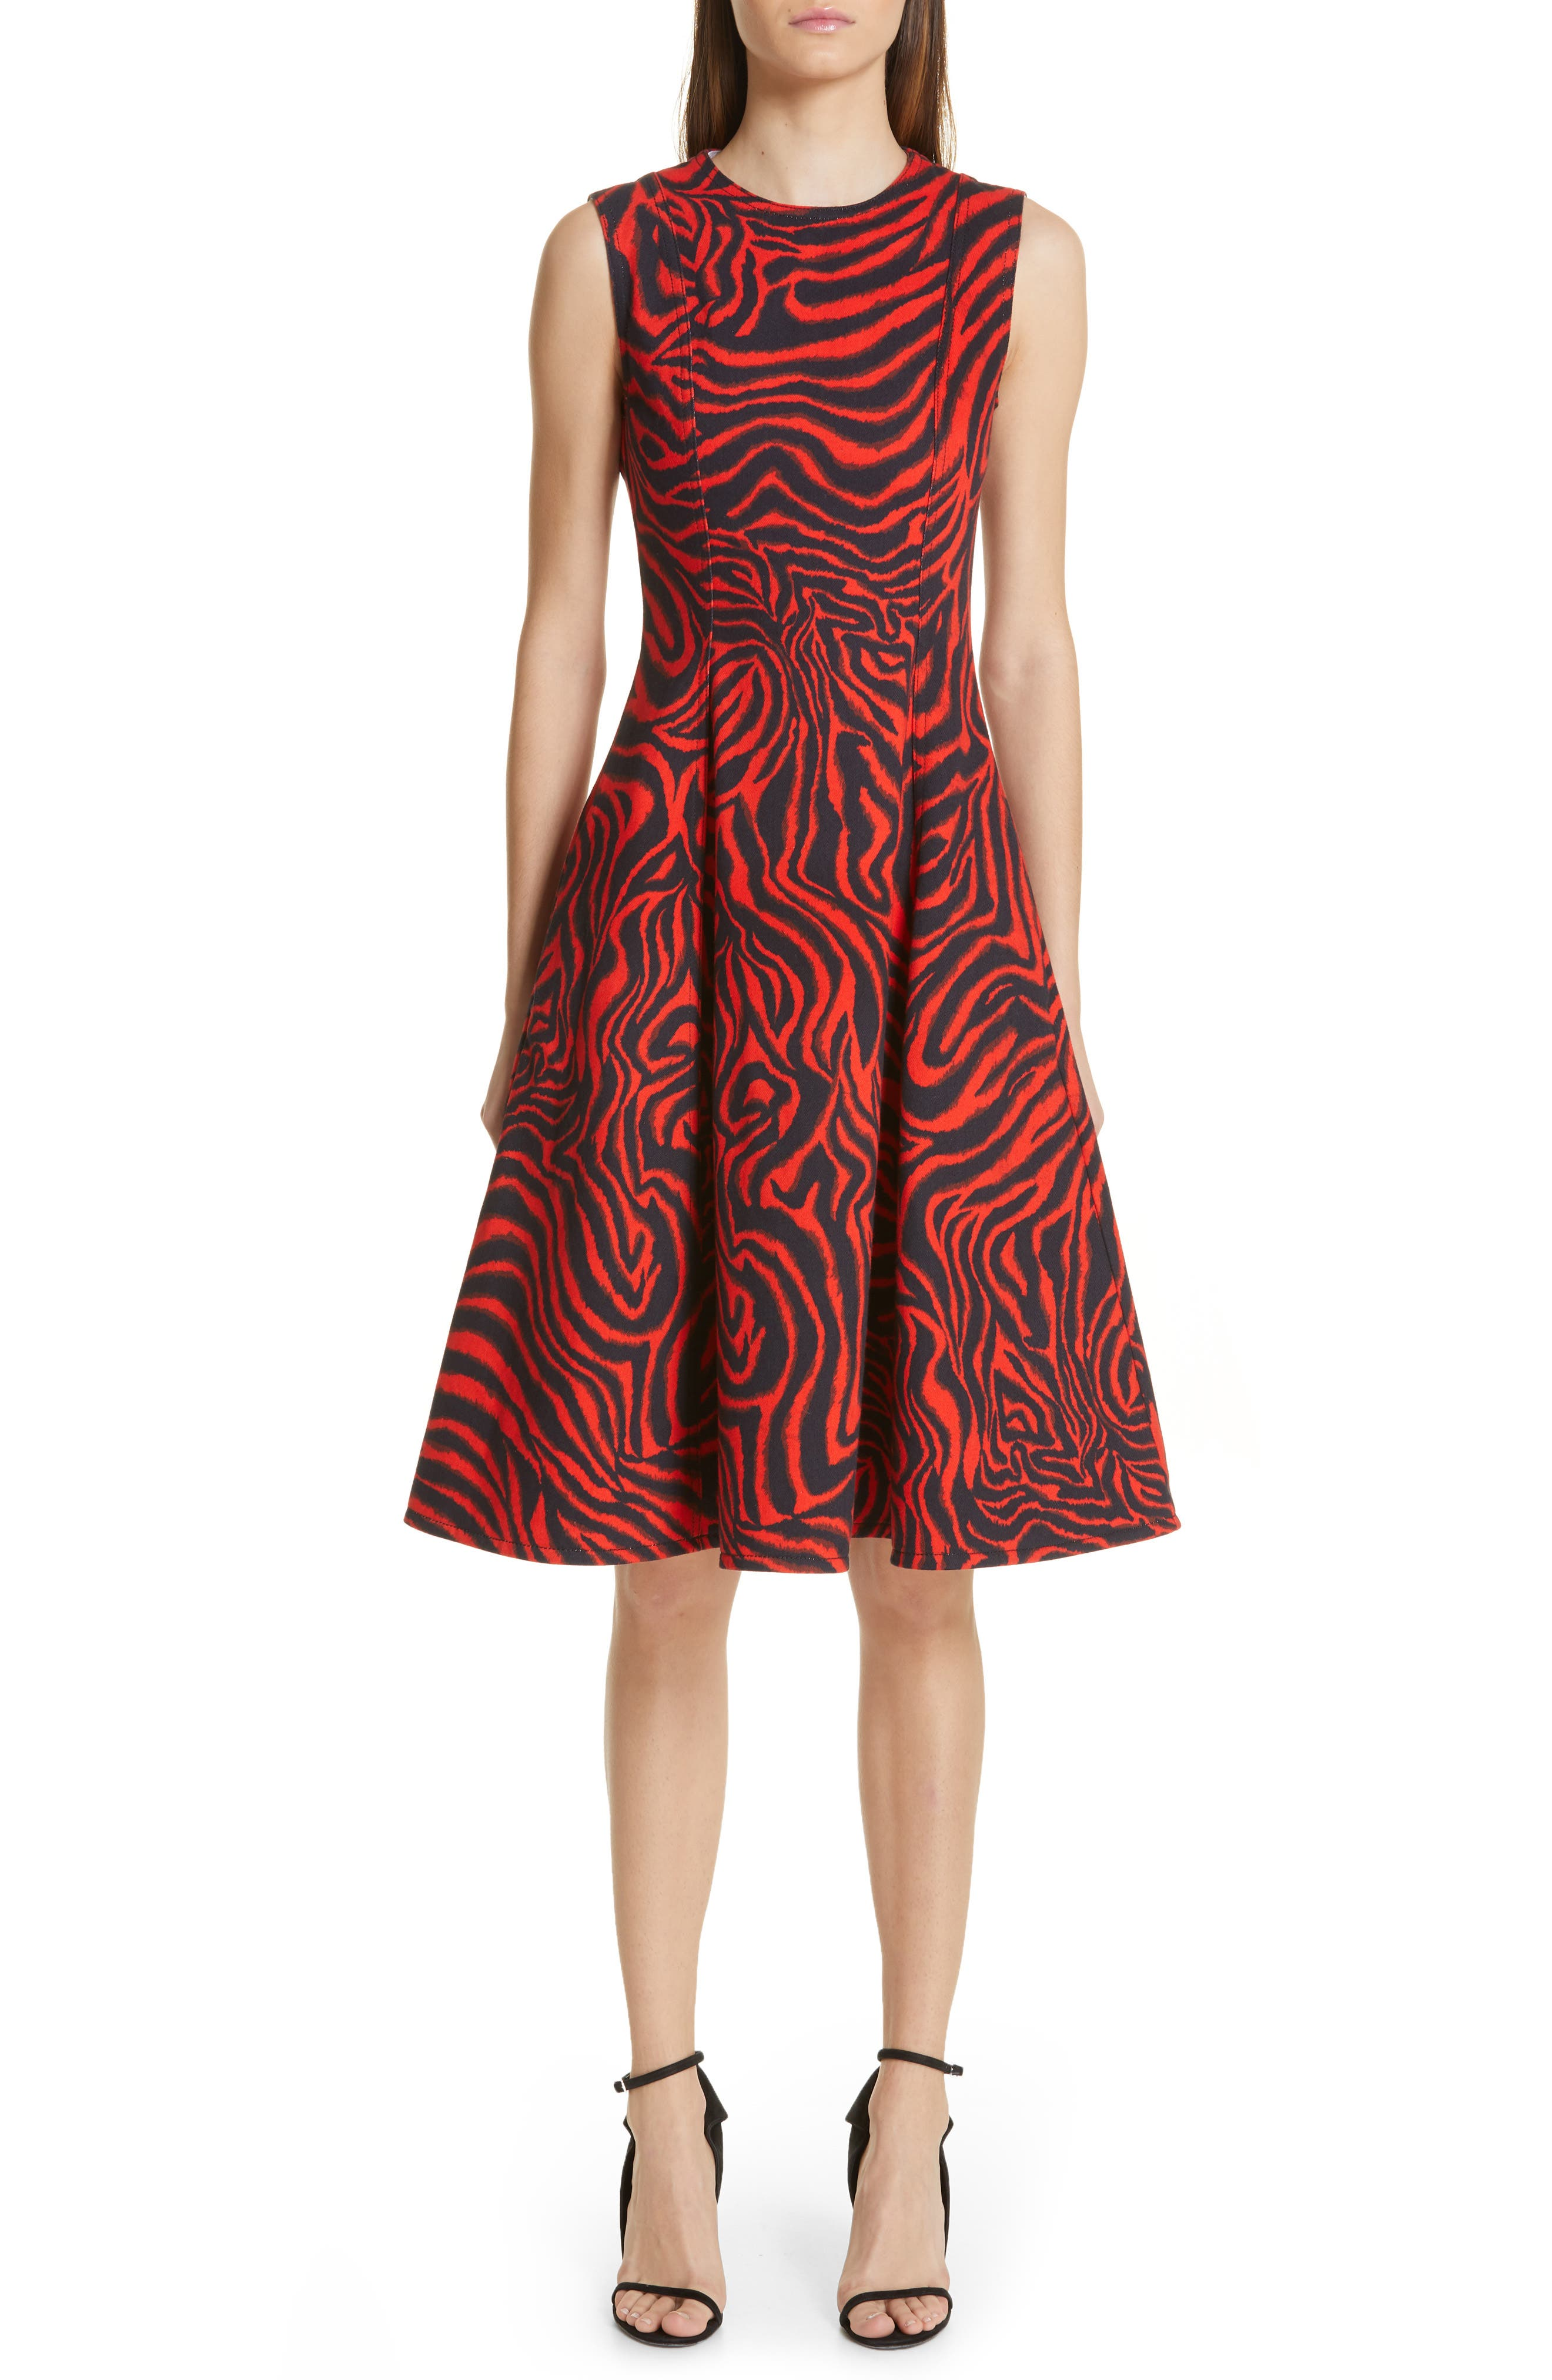 CALVIN KLEIN 205W39NYC, Zebra Print Denim A-Line Dress, Main thumbnail 1, color, RED ZEBRA